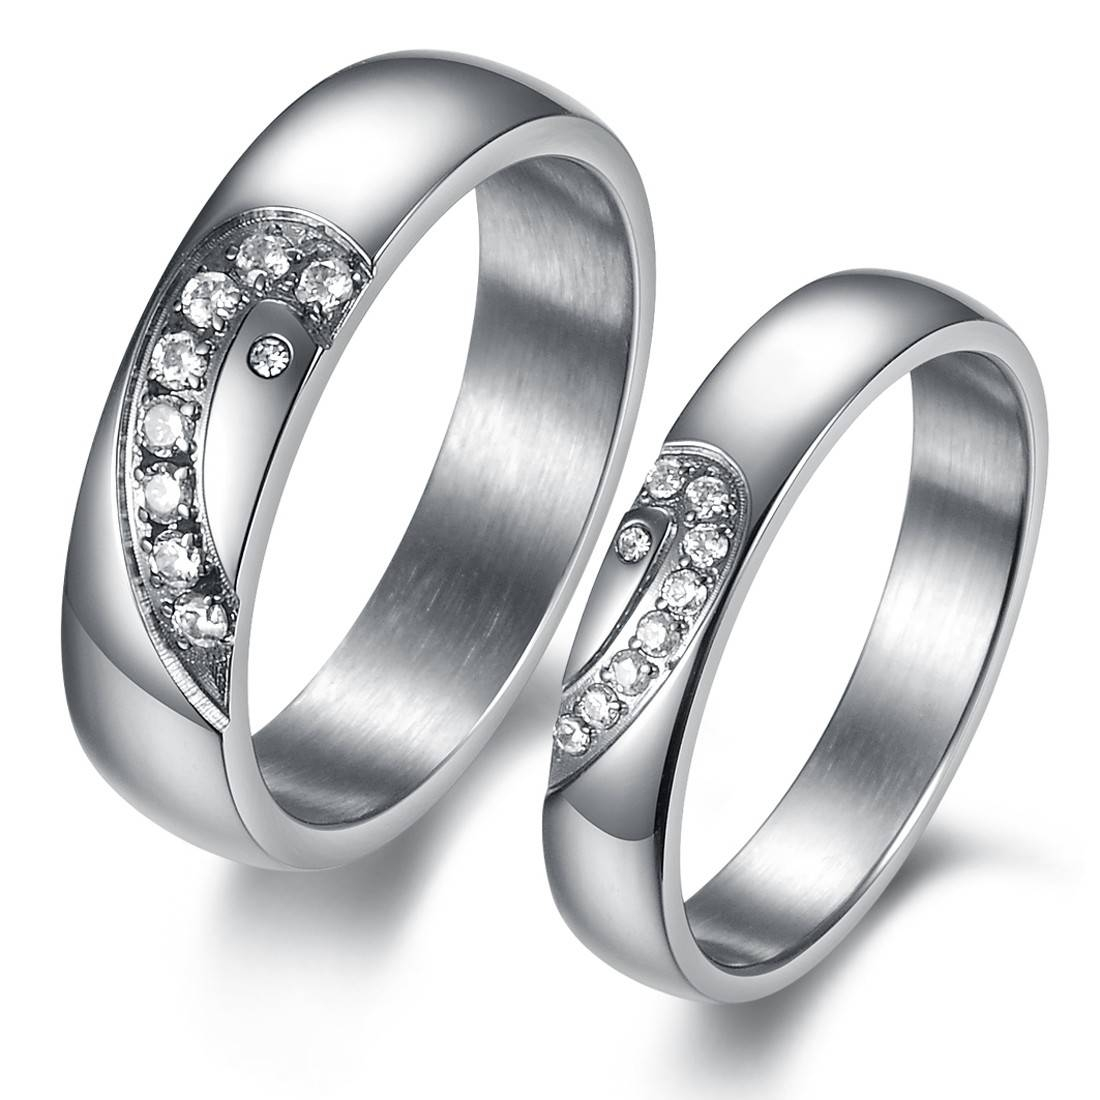 Several Ideas Of His And Hers Wedding Rings | Wedding Ideas In Matching Wedding Bands Sets For His And Her (View 14 of 15)